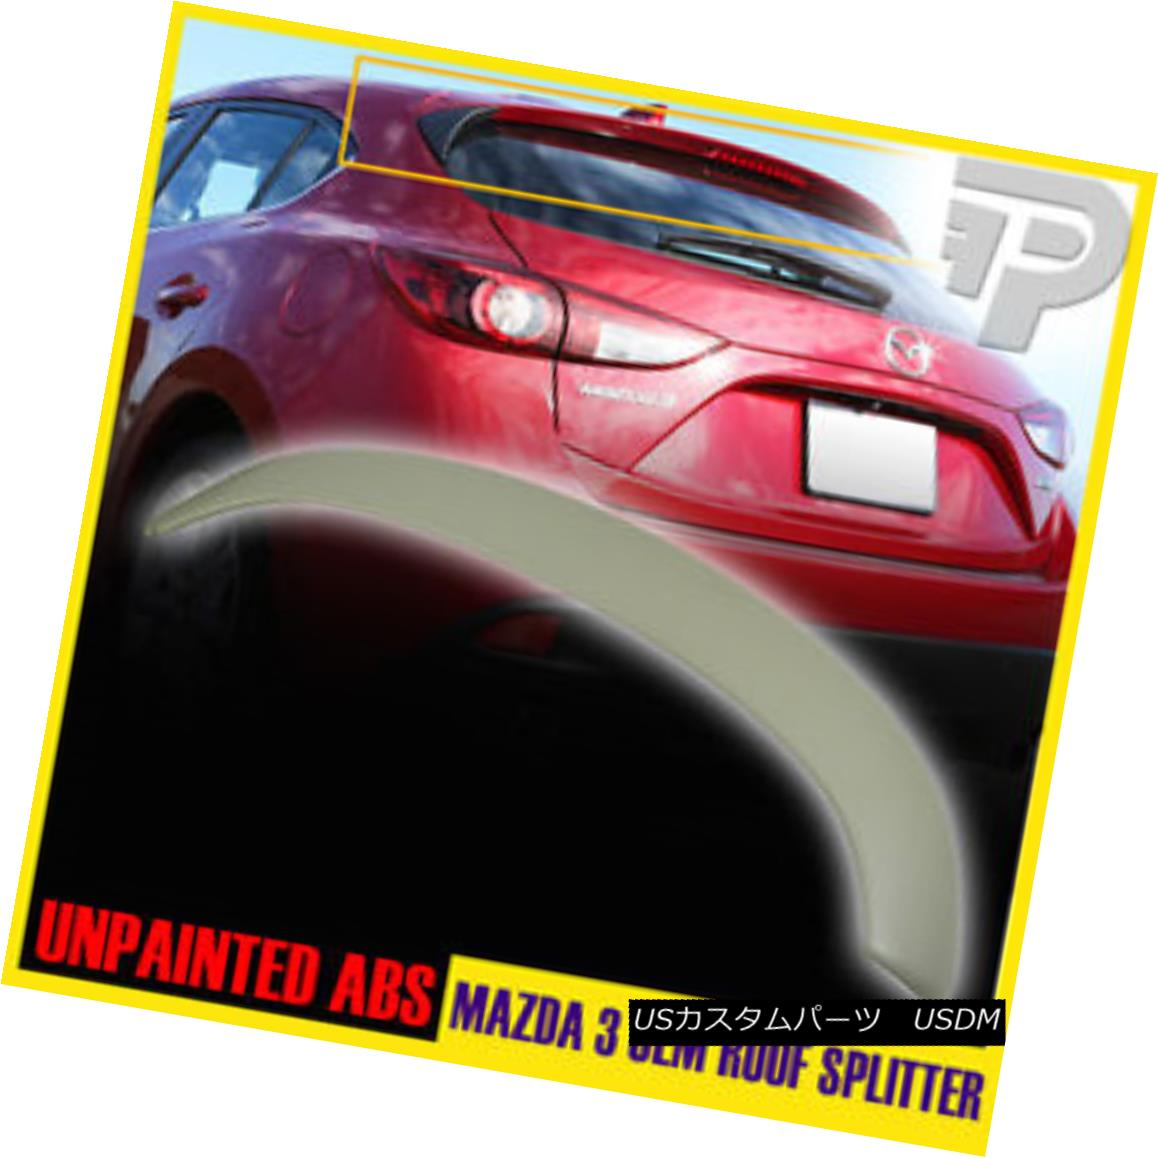 <title>全品送料無料 車用品 バイク用品 >> パーツ 外装 エアロパーツ リアスポイラー PAINTED FOR MAZDA 3 ABS Hatchback 5DR REAR ROOF WING LIP SPOILER OE-TYPE ABSハッチバック5DRリアルーフウイングリップスポイラーOE-TYPE</title>